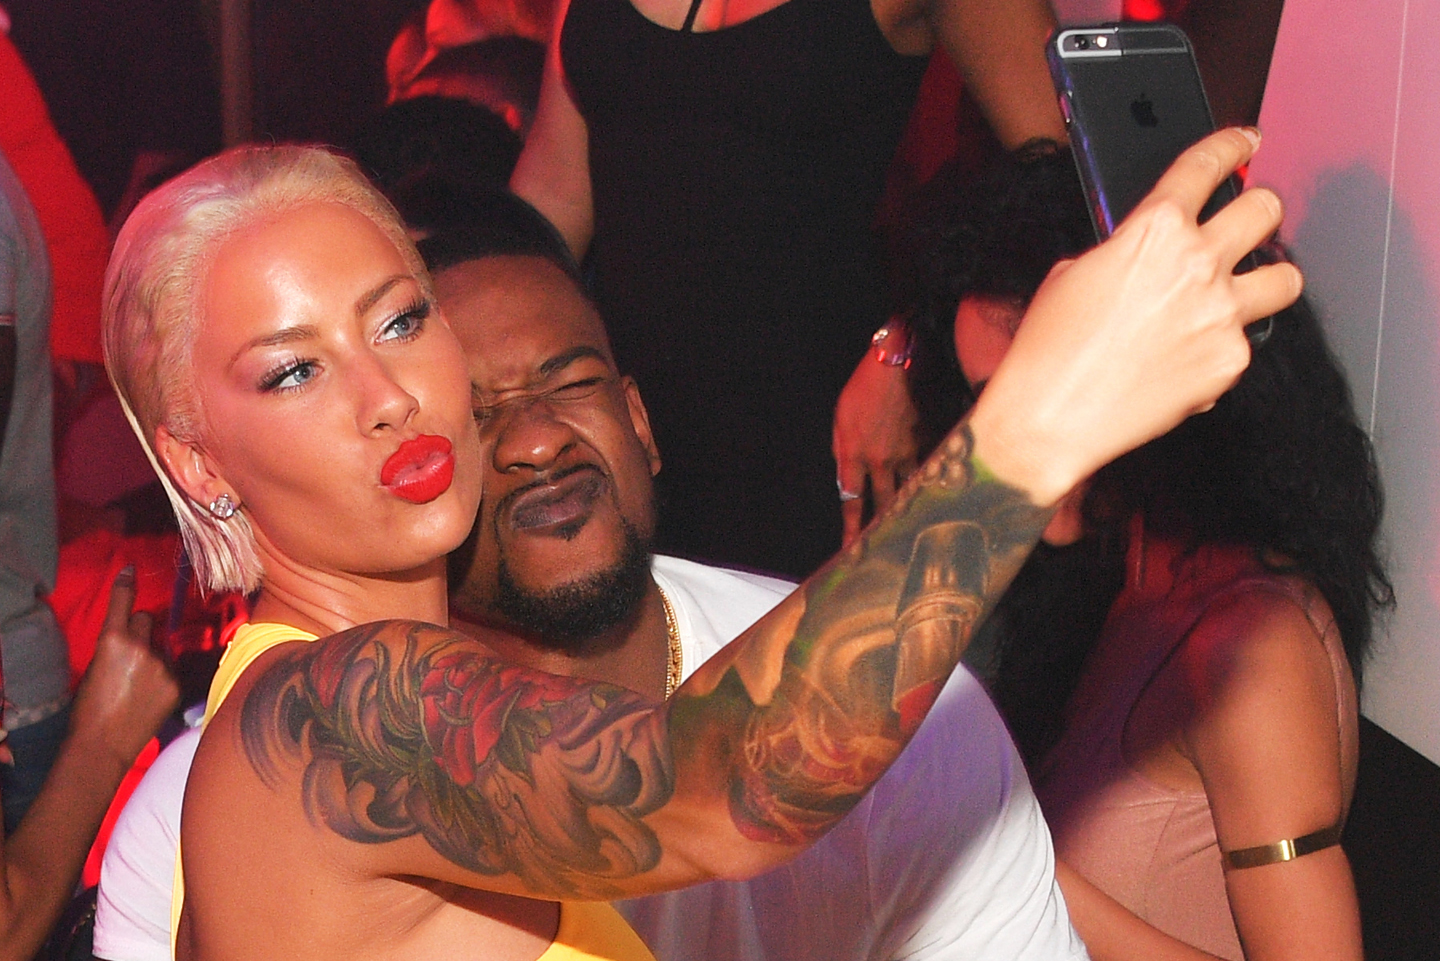 Terrence Ross and Amber Rose attend The Memorial Weekend Affair at Gold Room on May 30, 2016 in Atlanta, Georgia.